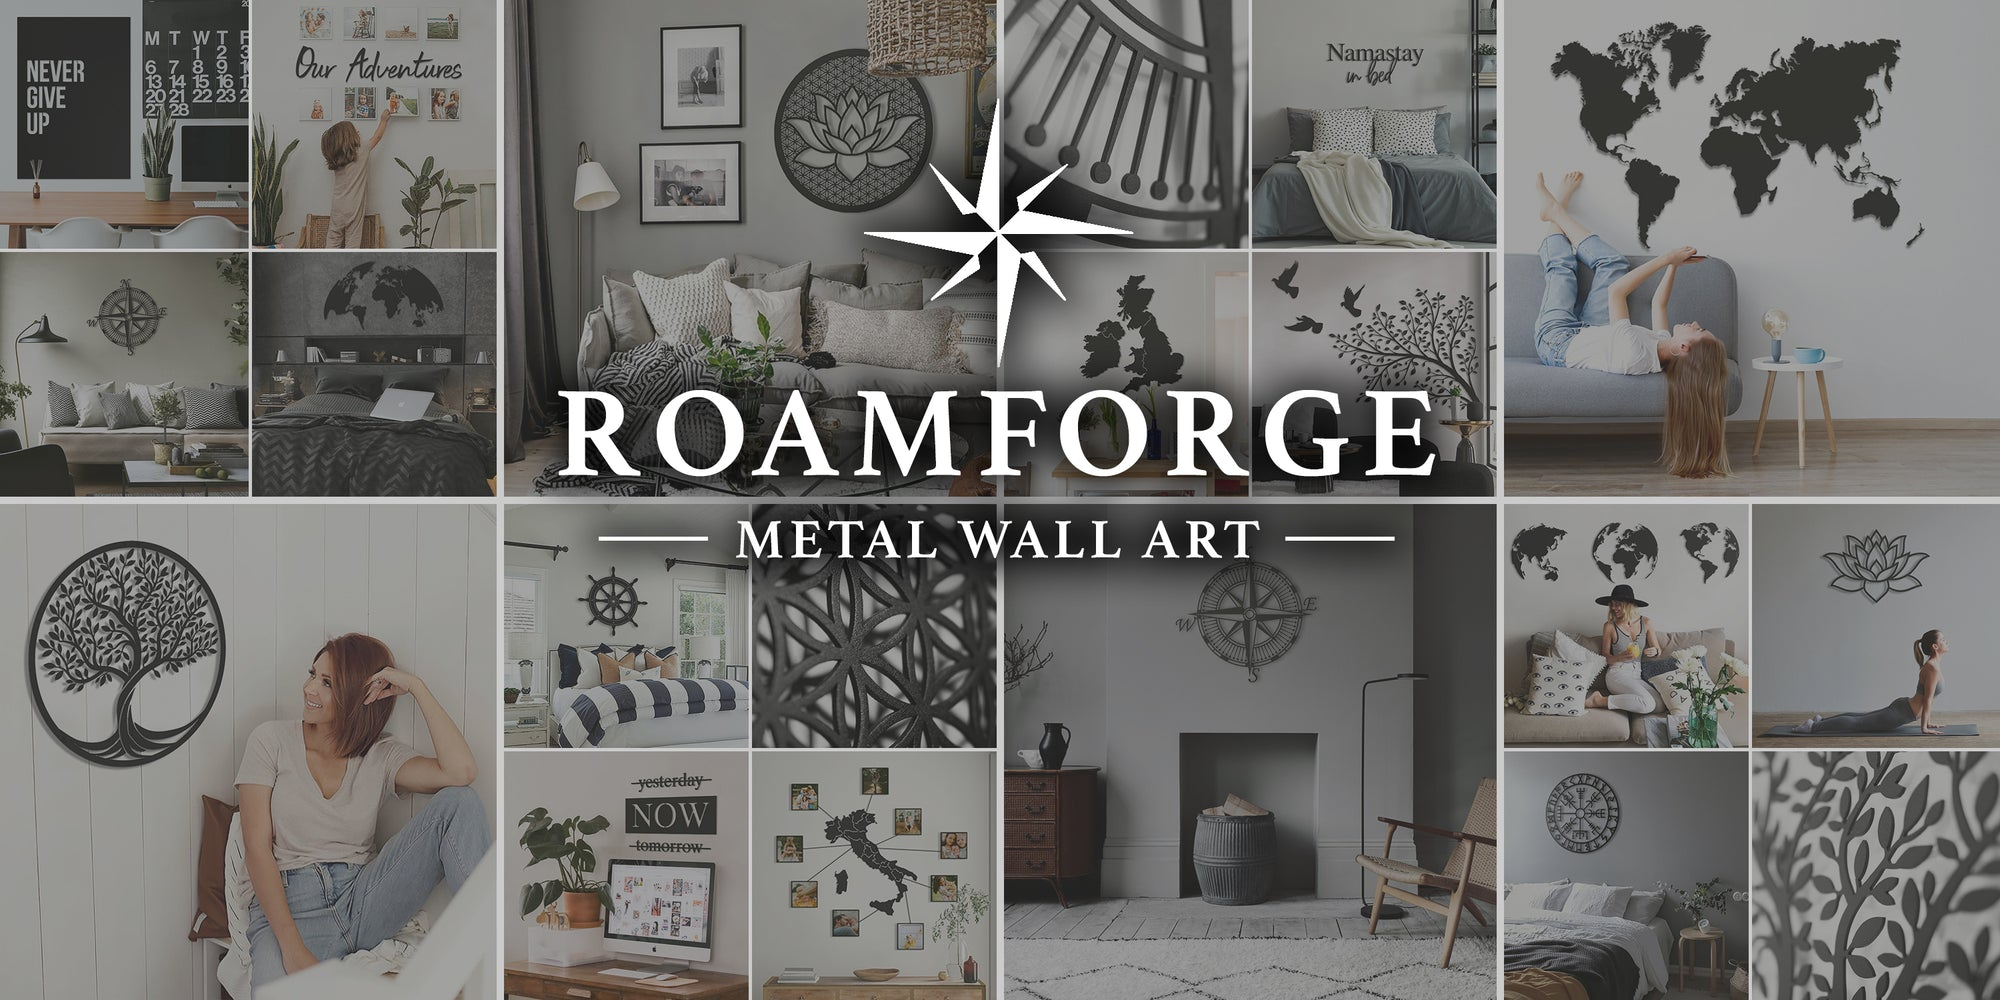 Roamforge Metal Wall Art